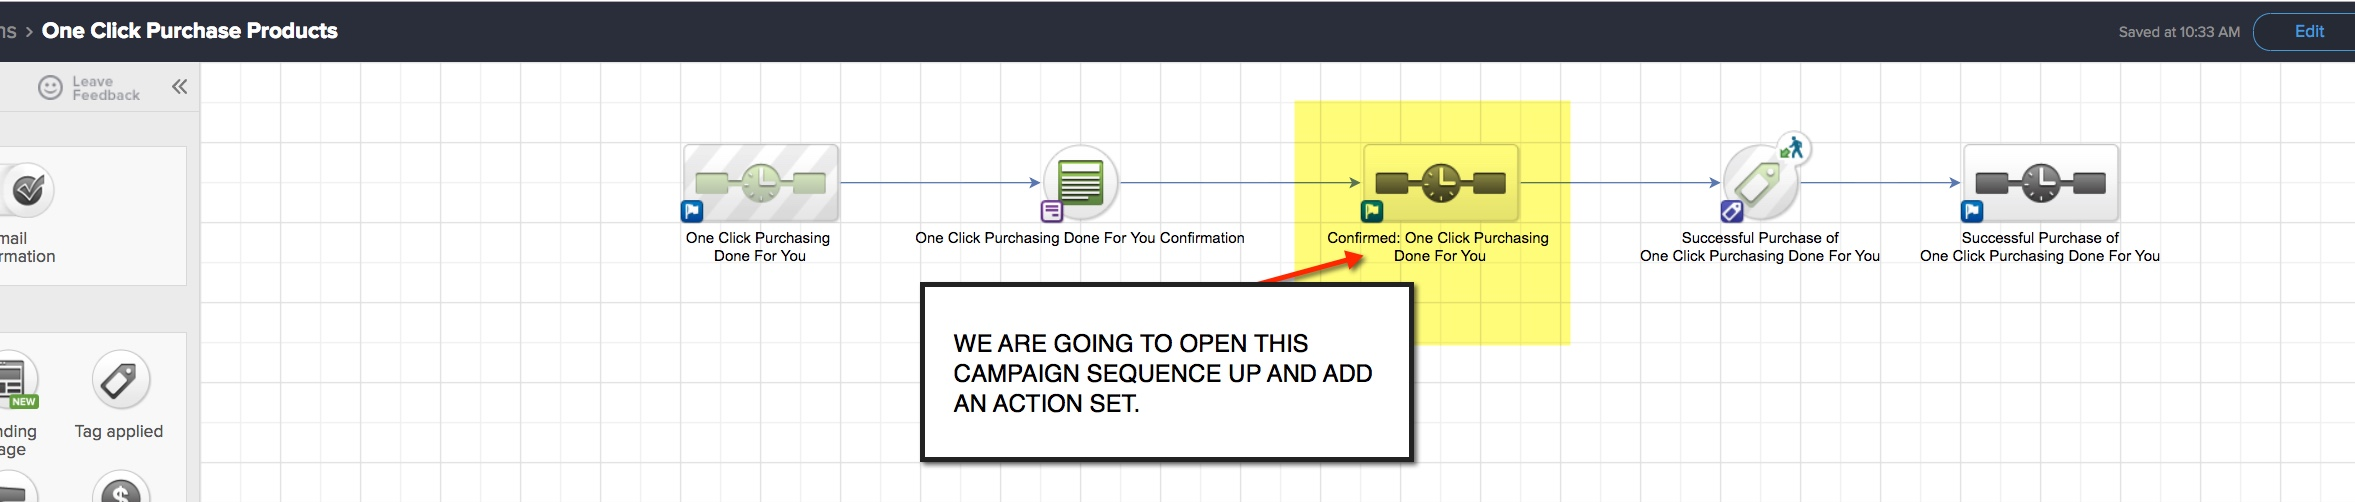 One click purchase add the campaign action set